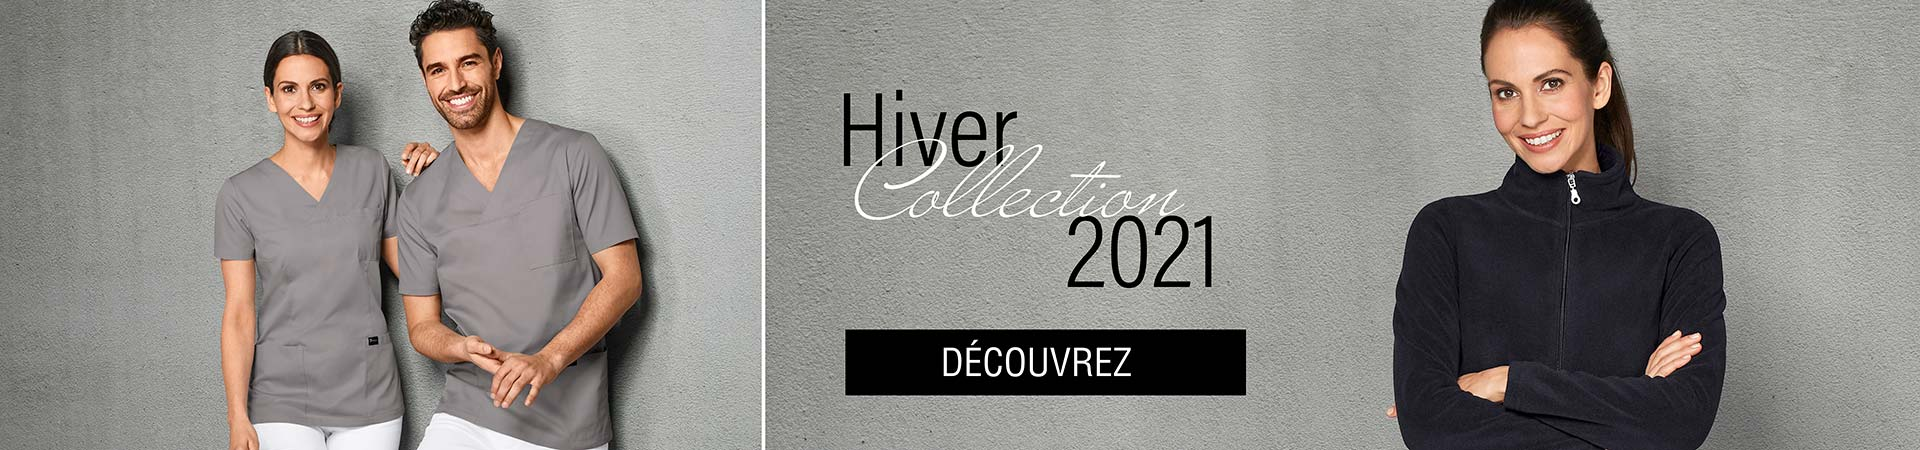 Hiver collection 2021